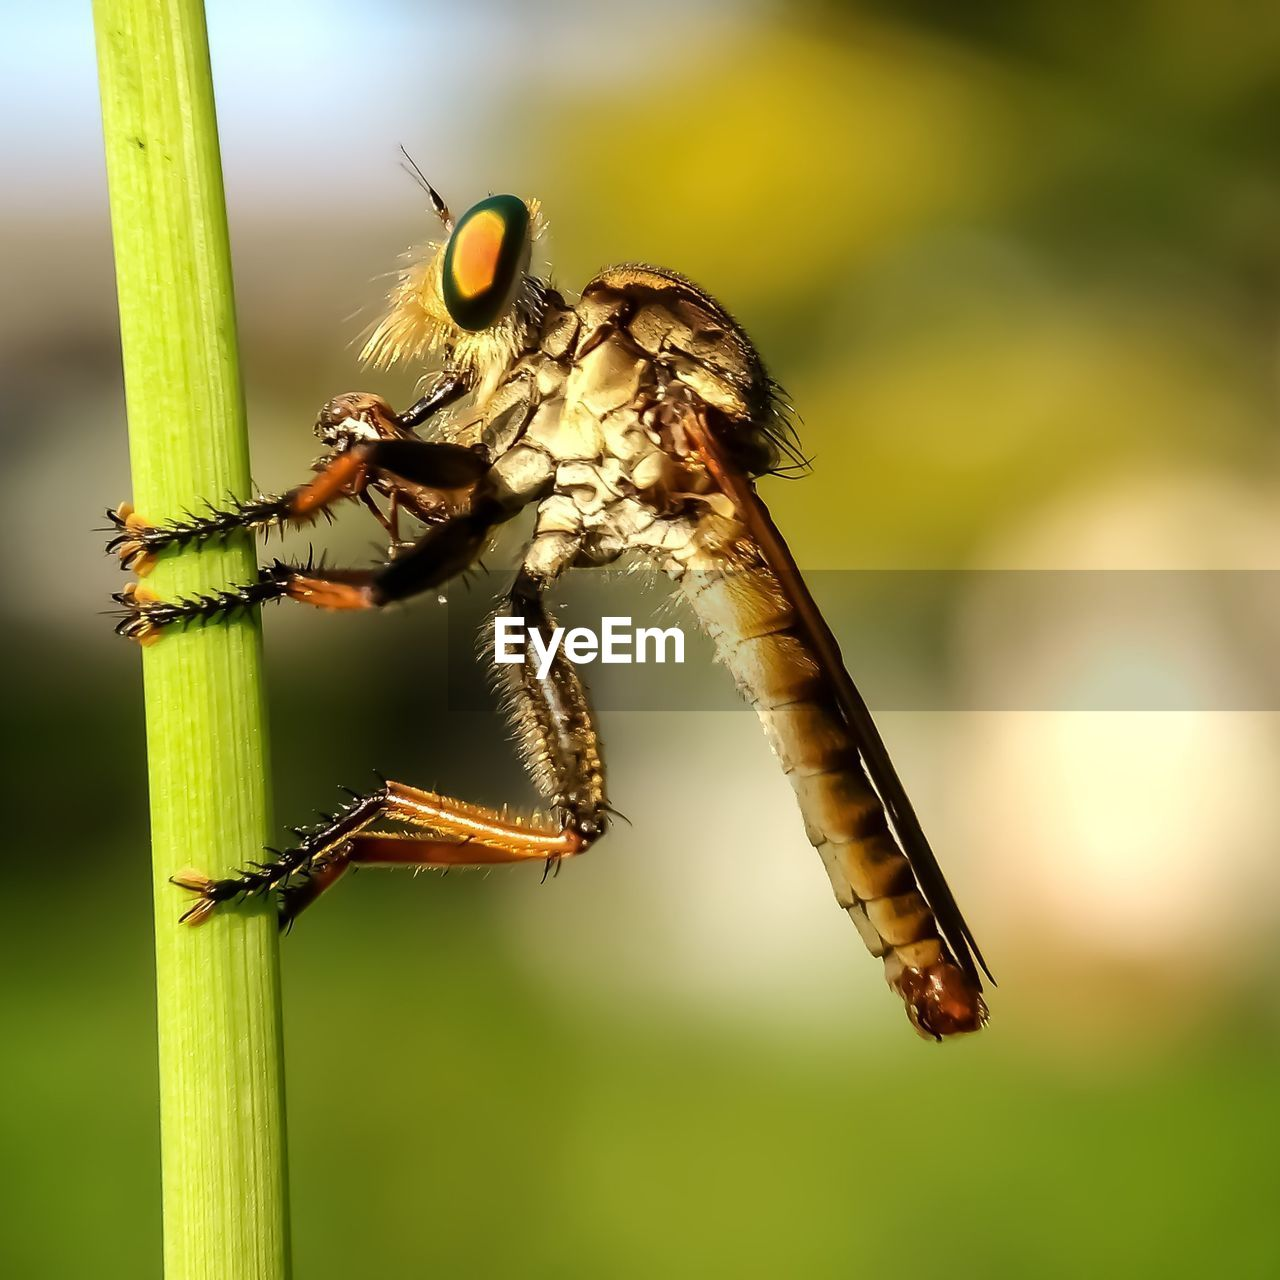 insect, invertebrate, animals in the wild, animal wildlife, animal themes, animal, one animal, close-up, focus on foreground, nature, plant, day, no people, green color, outdoors, selective focus, zoology, animal body part, beauty in nature, sunlight, animal eye